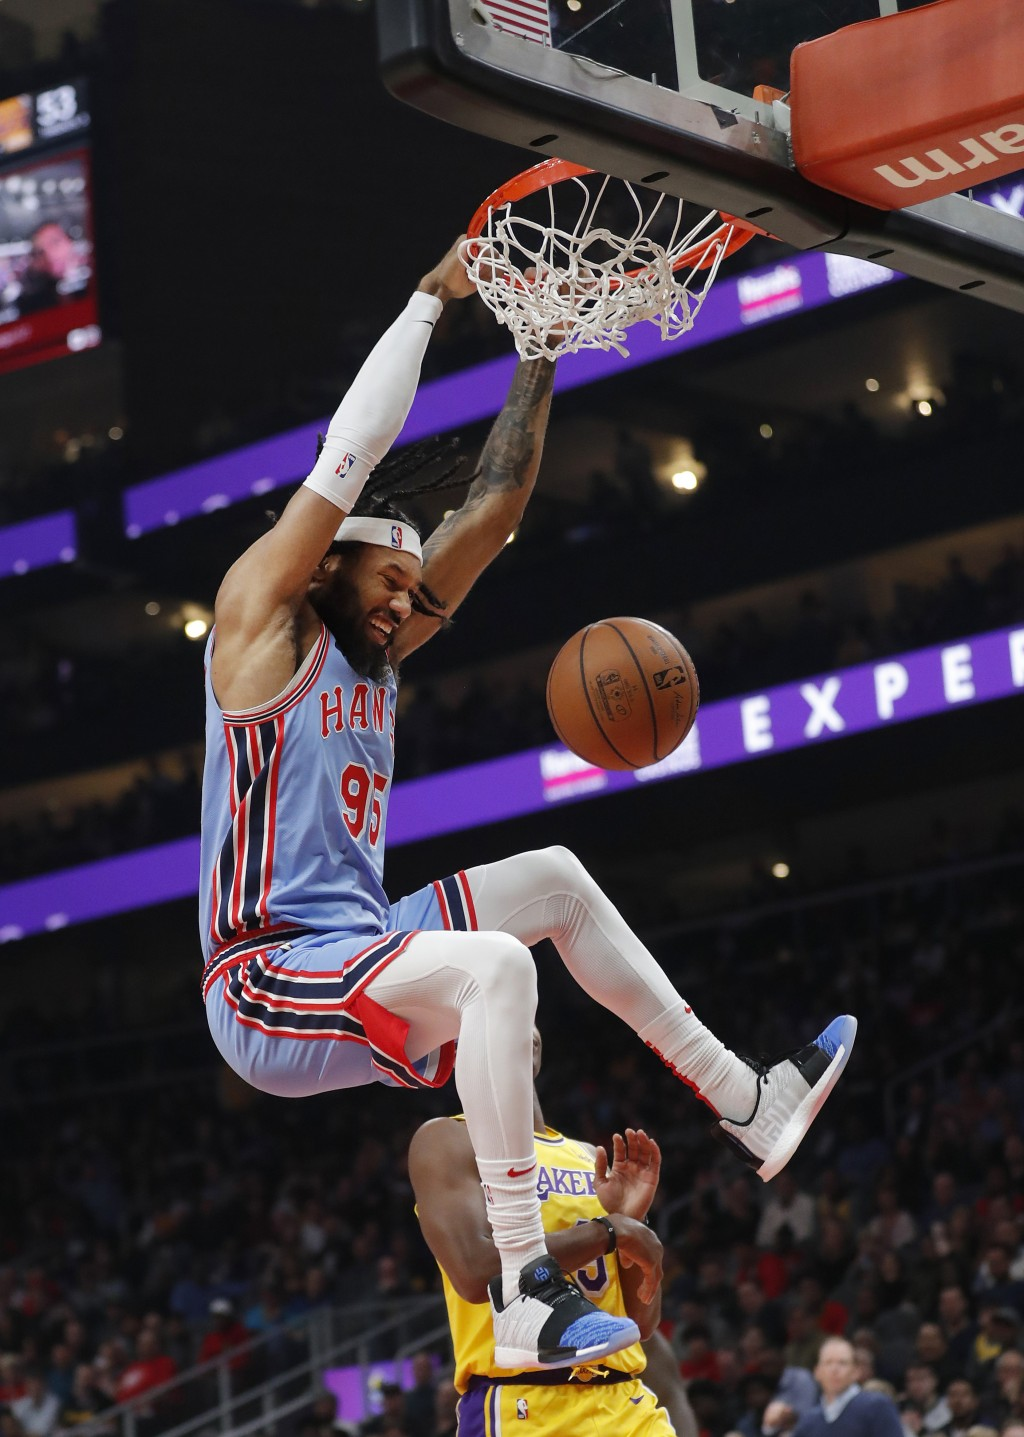 Atlanta Hawks forward DeAndre' Bembry (95) scores against the Los Angeles Lakers during the first half of an NBA basketball game Tuesday, Feb. 12, 201...